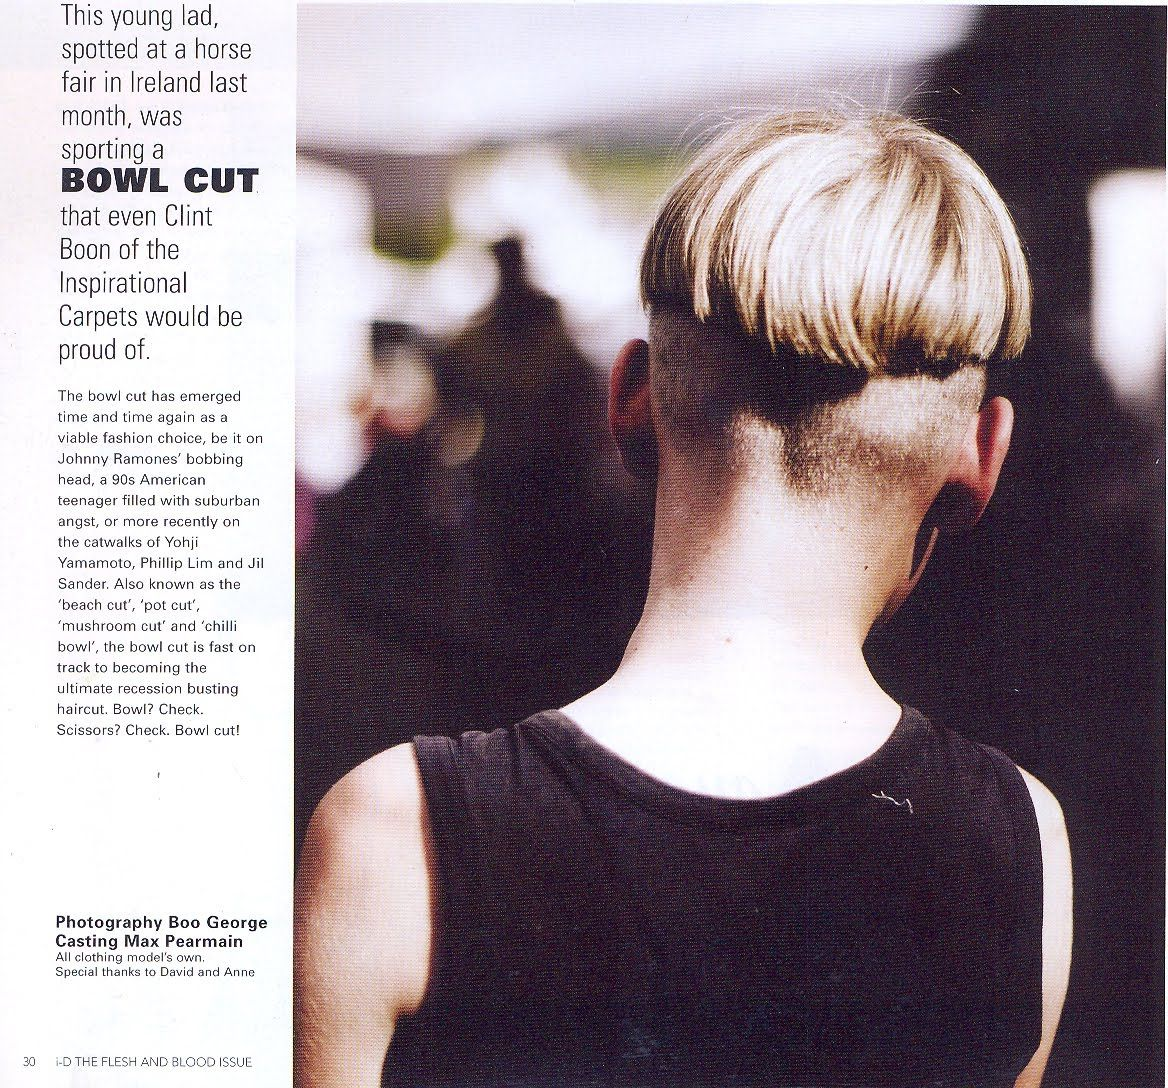 Bowl cut haircut men bowl cut hair  yam s project  pinterest  bowl cut hair bowl